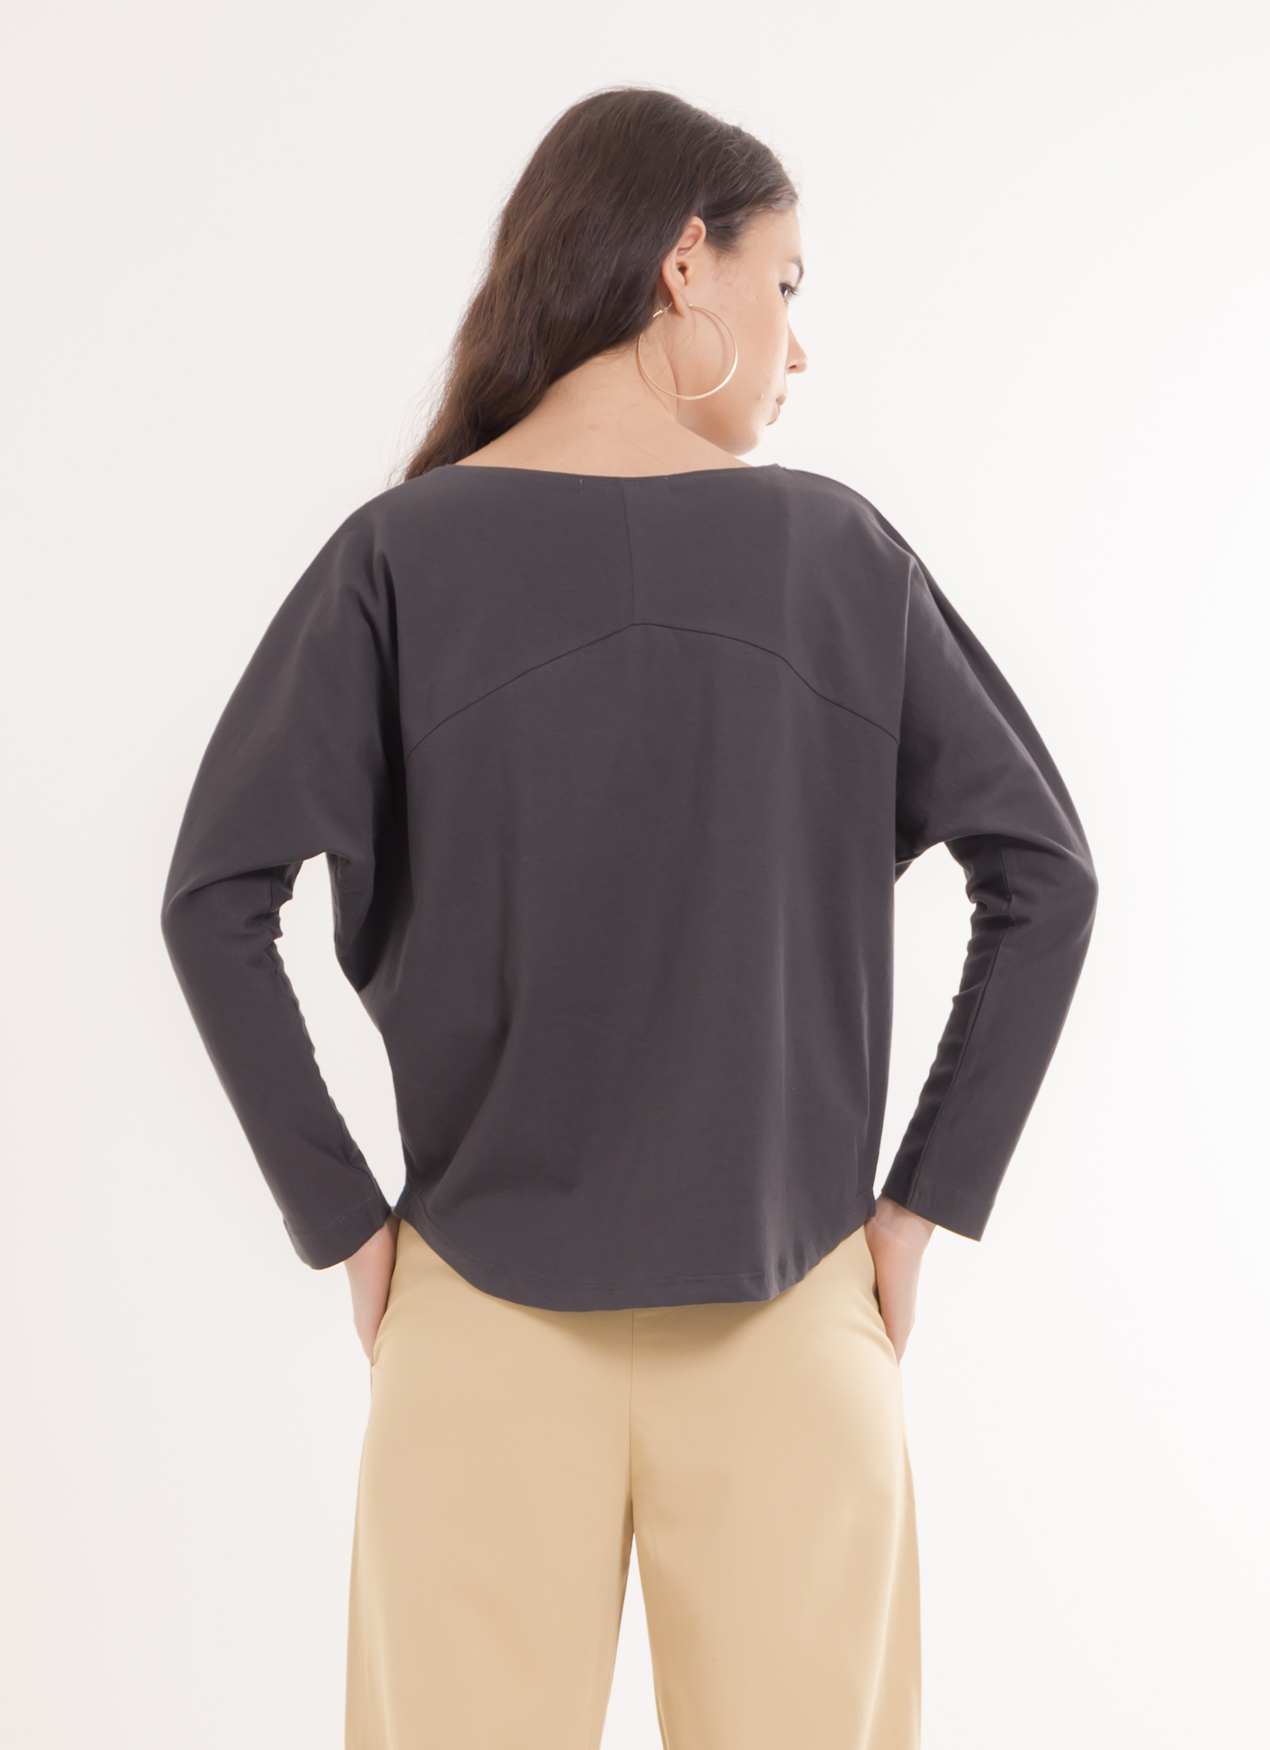 American Holic Tia Top - Charcoal Gray